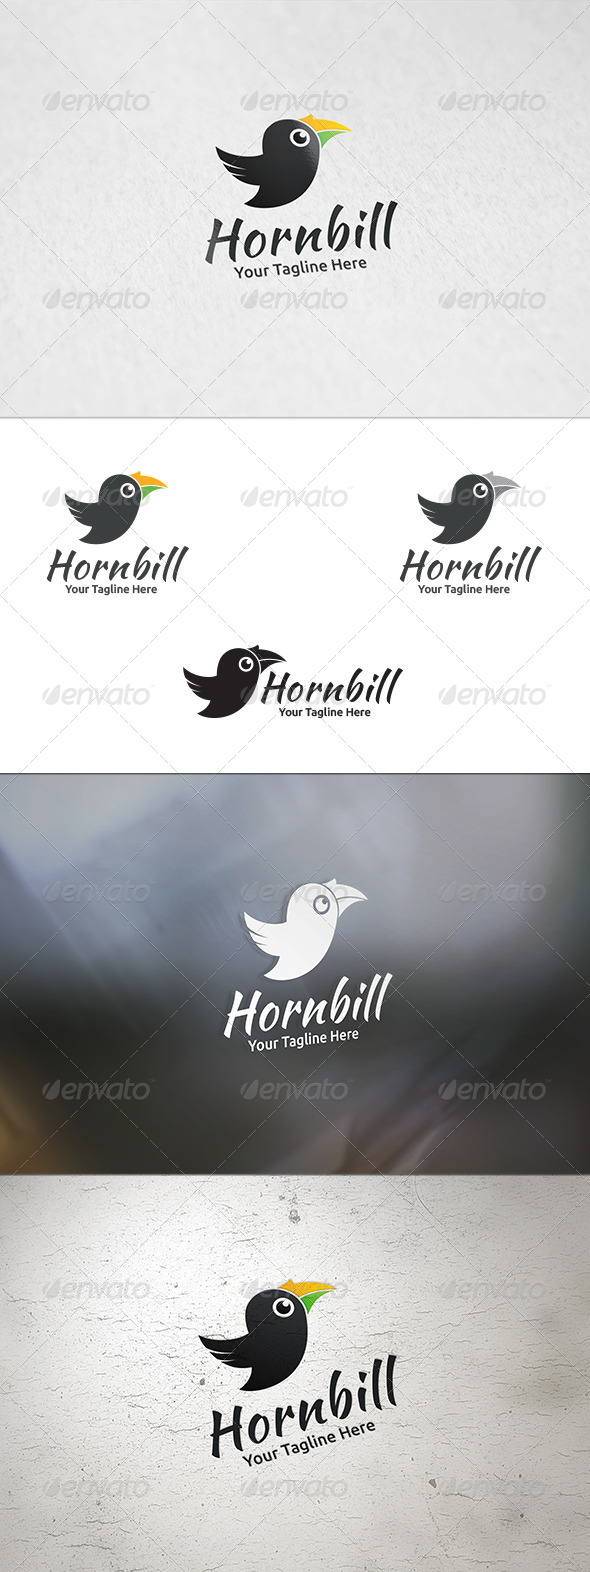 GraphicRiver Hornbill Logo Template 8723946